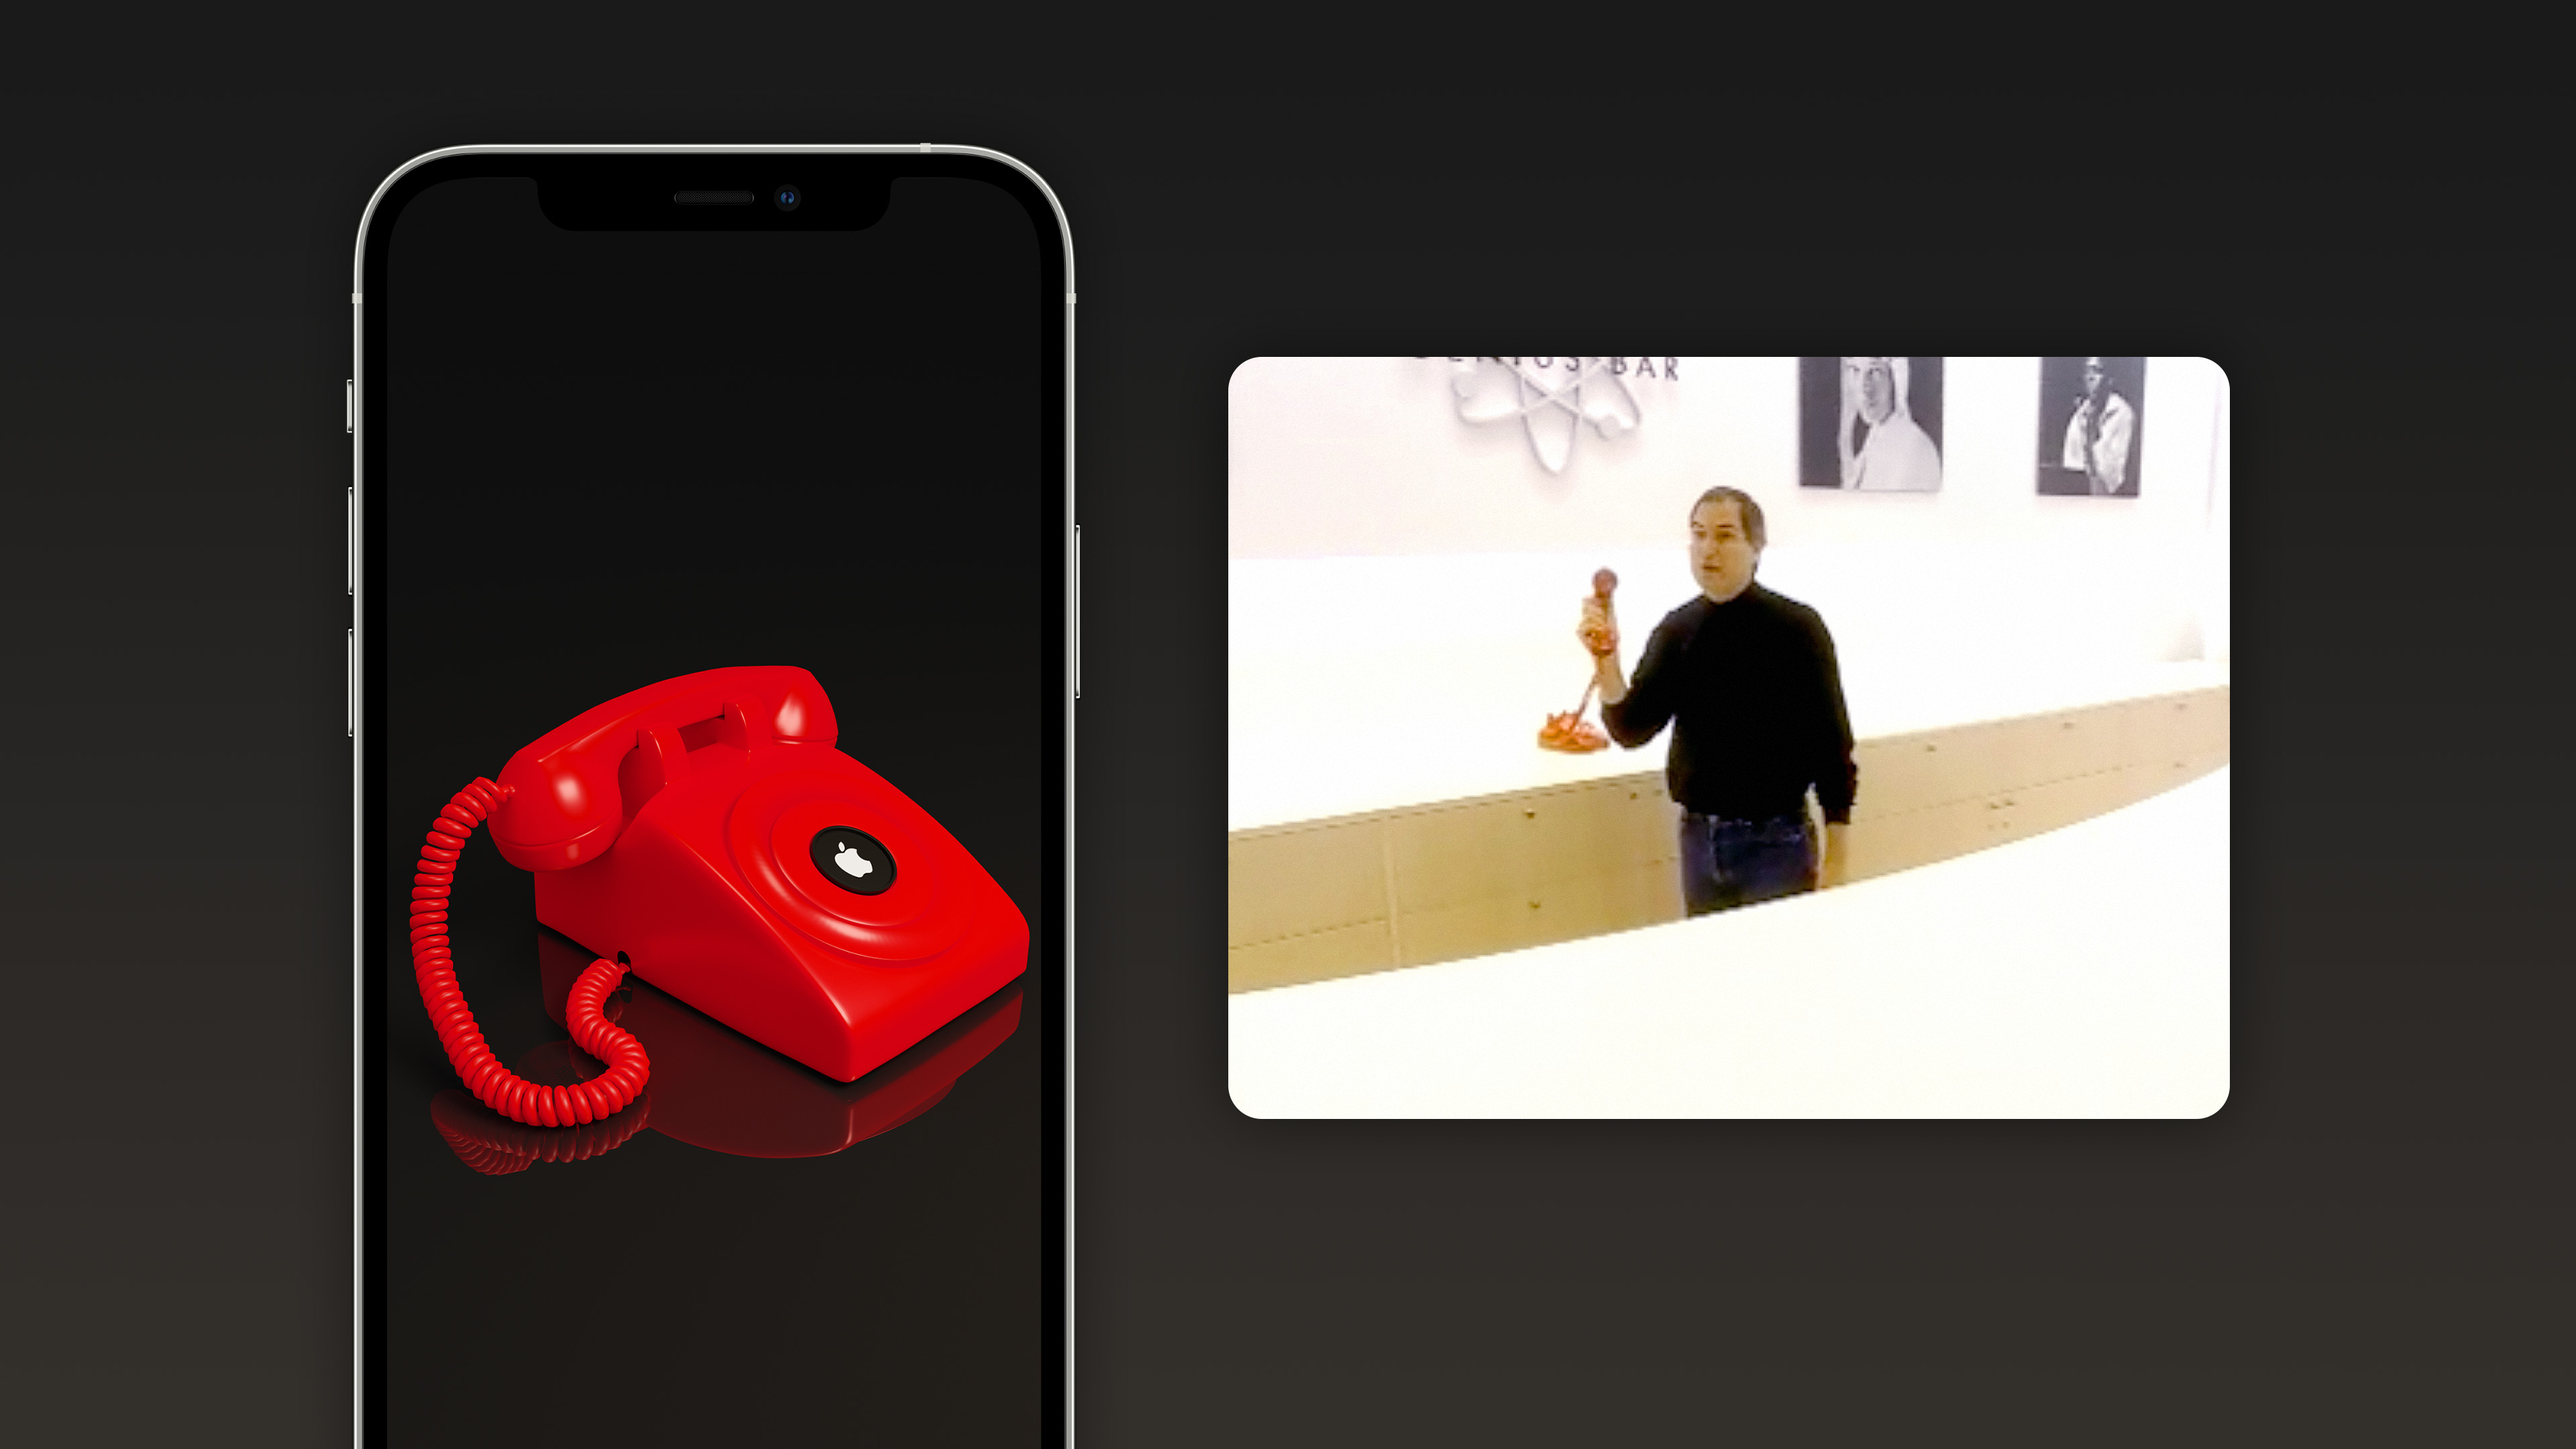 """Steve Jobs showed a red rotary telephone offering a """"hotline"""" to Cupertino at the world's first Apple Store."""